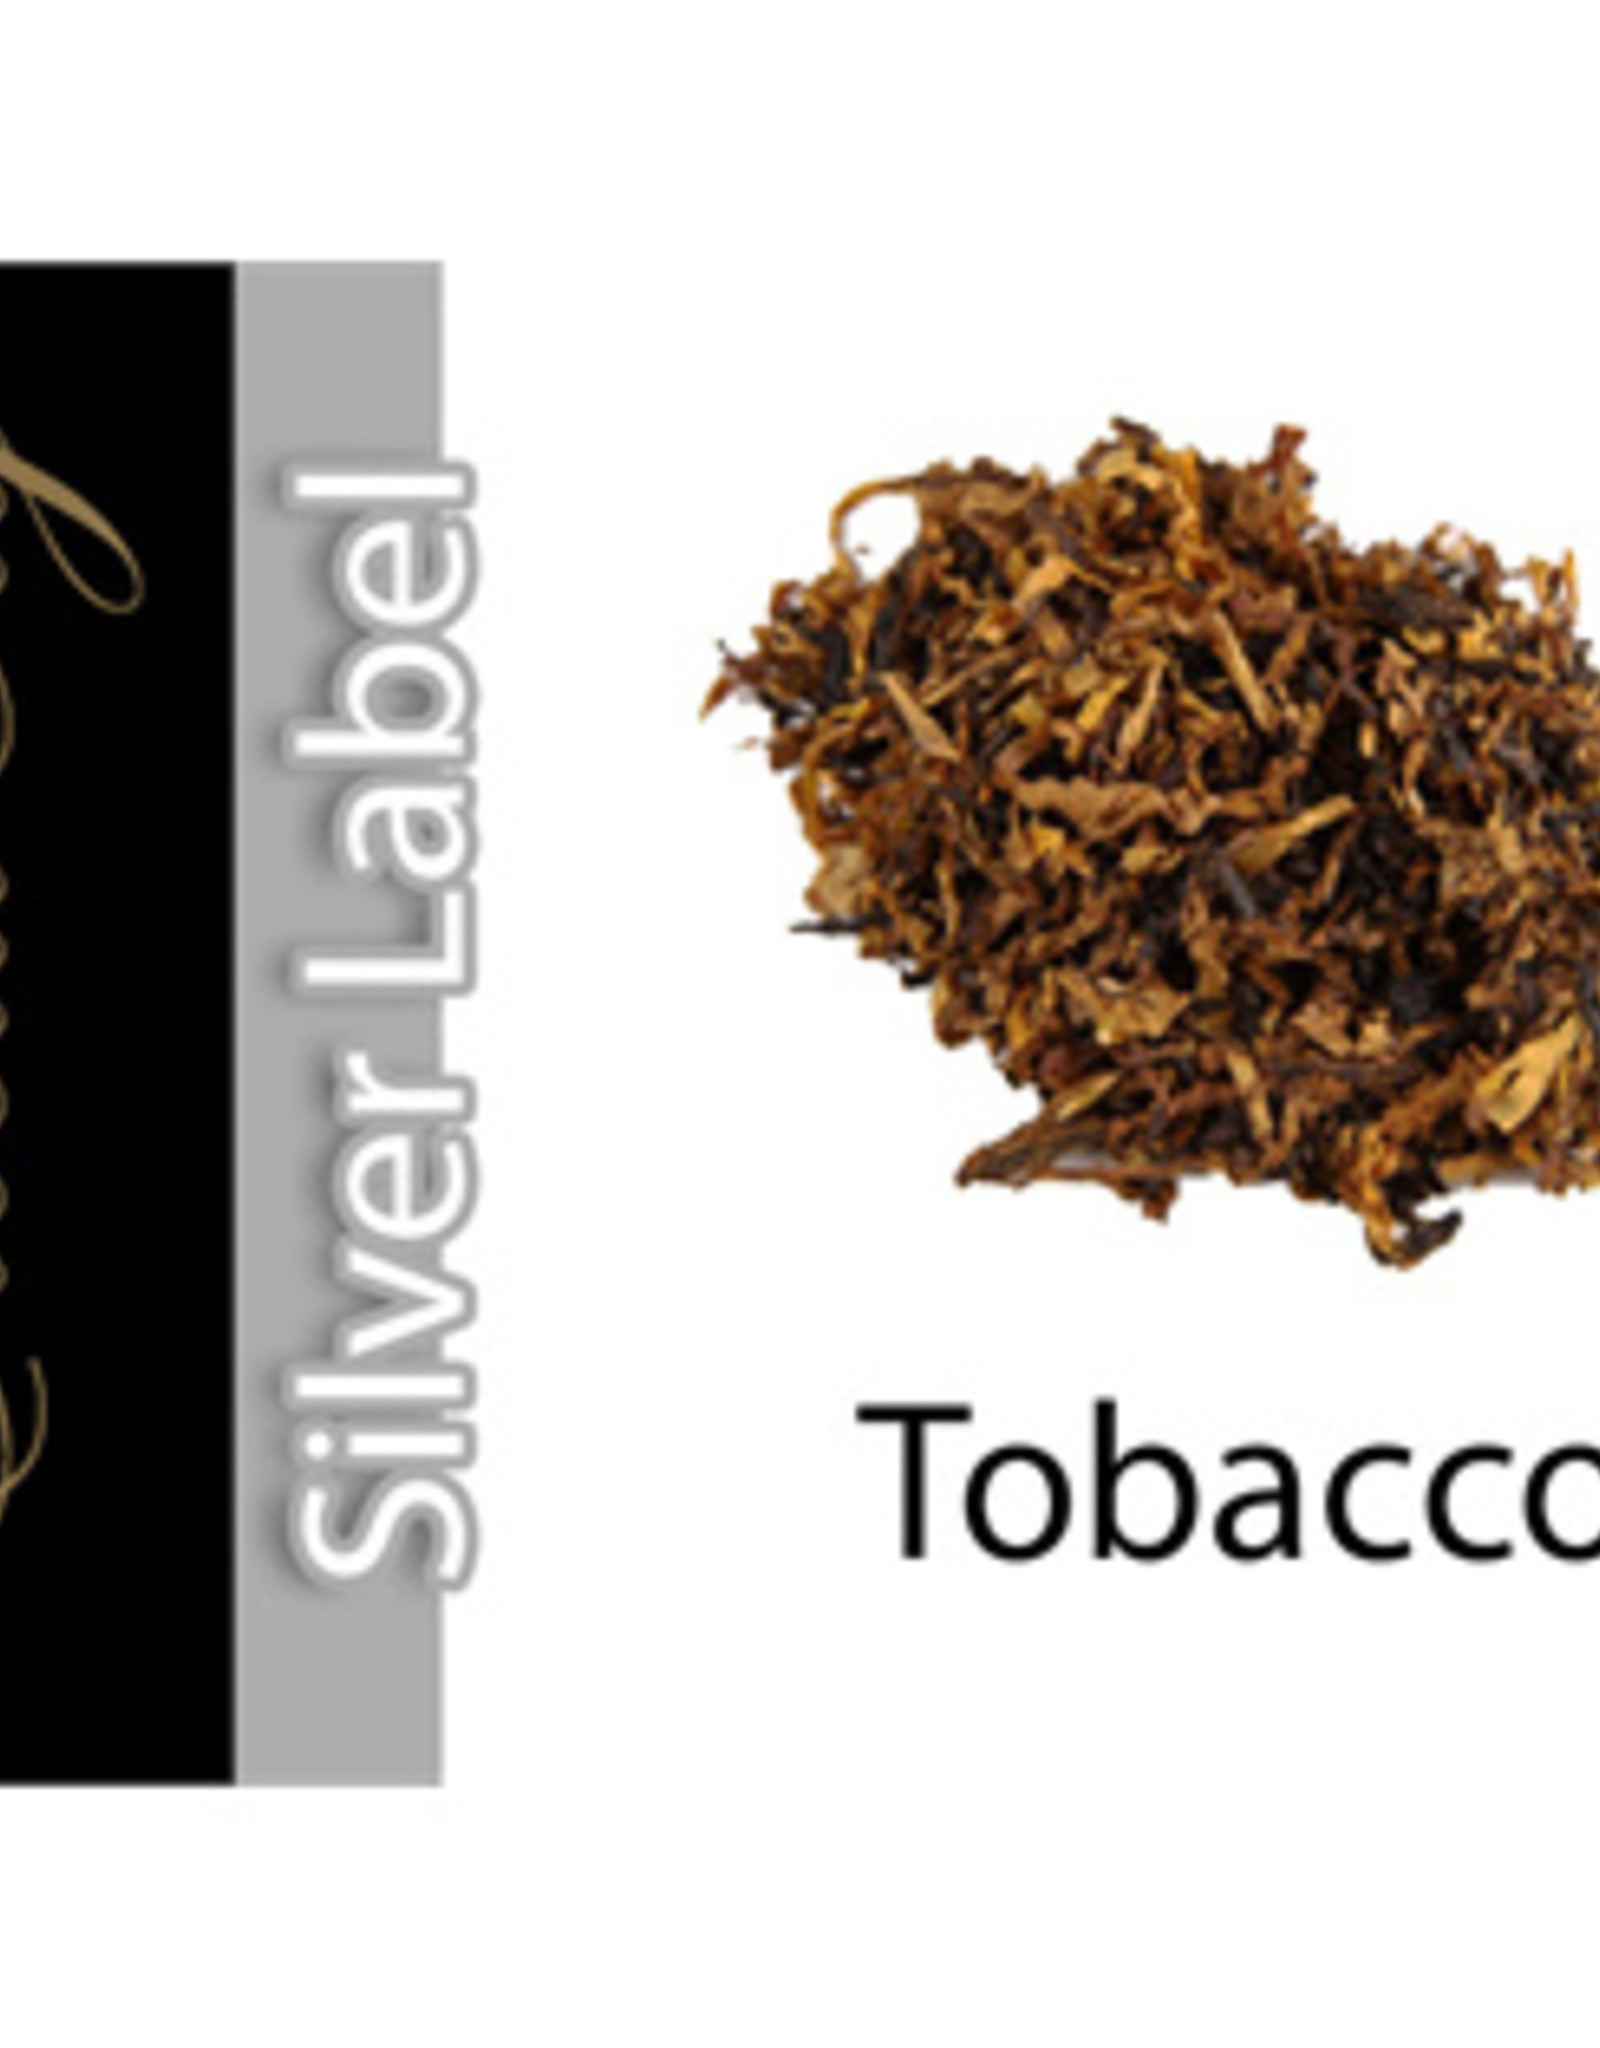 Exclucig Exclucig Silver Label E-liquid Tobacco 6 mg Nicotine